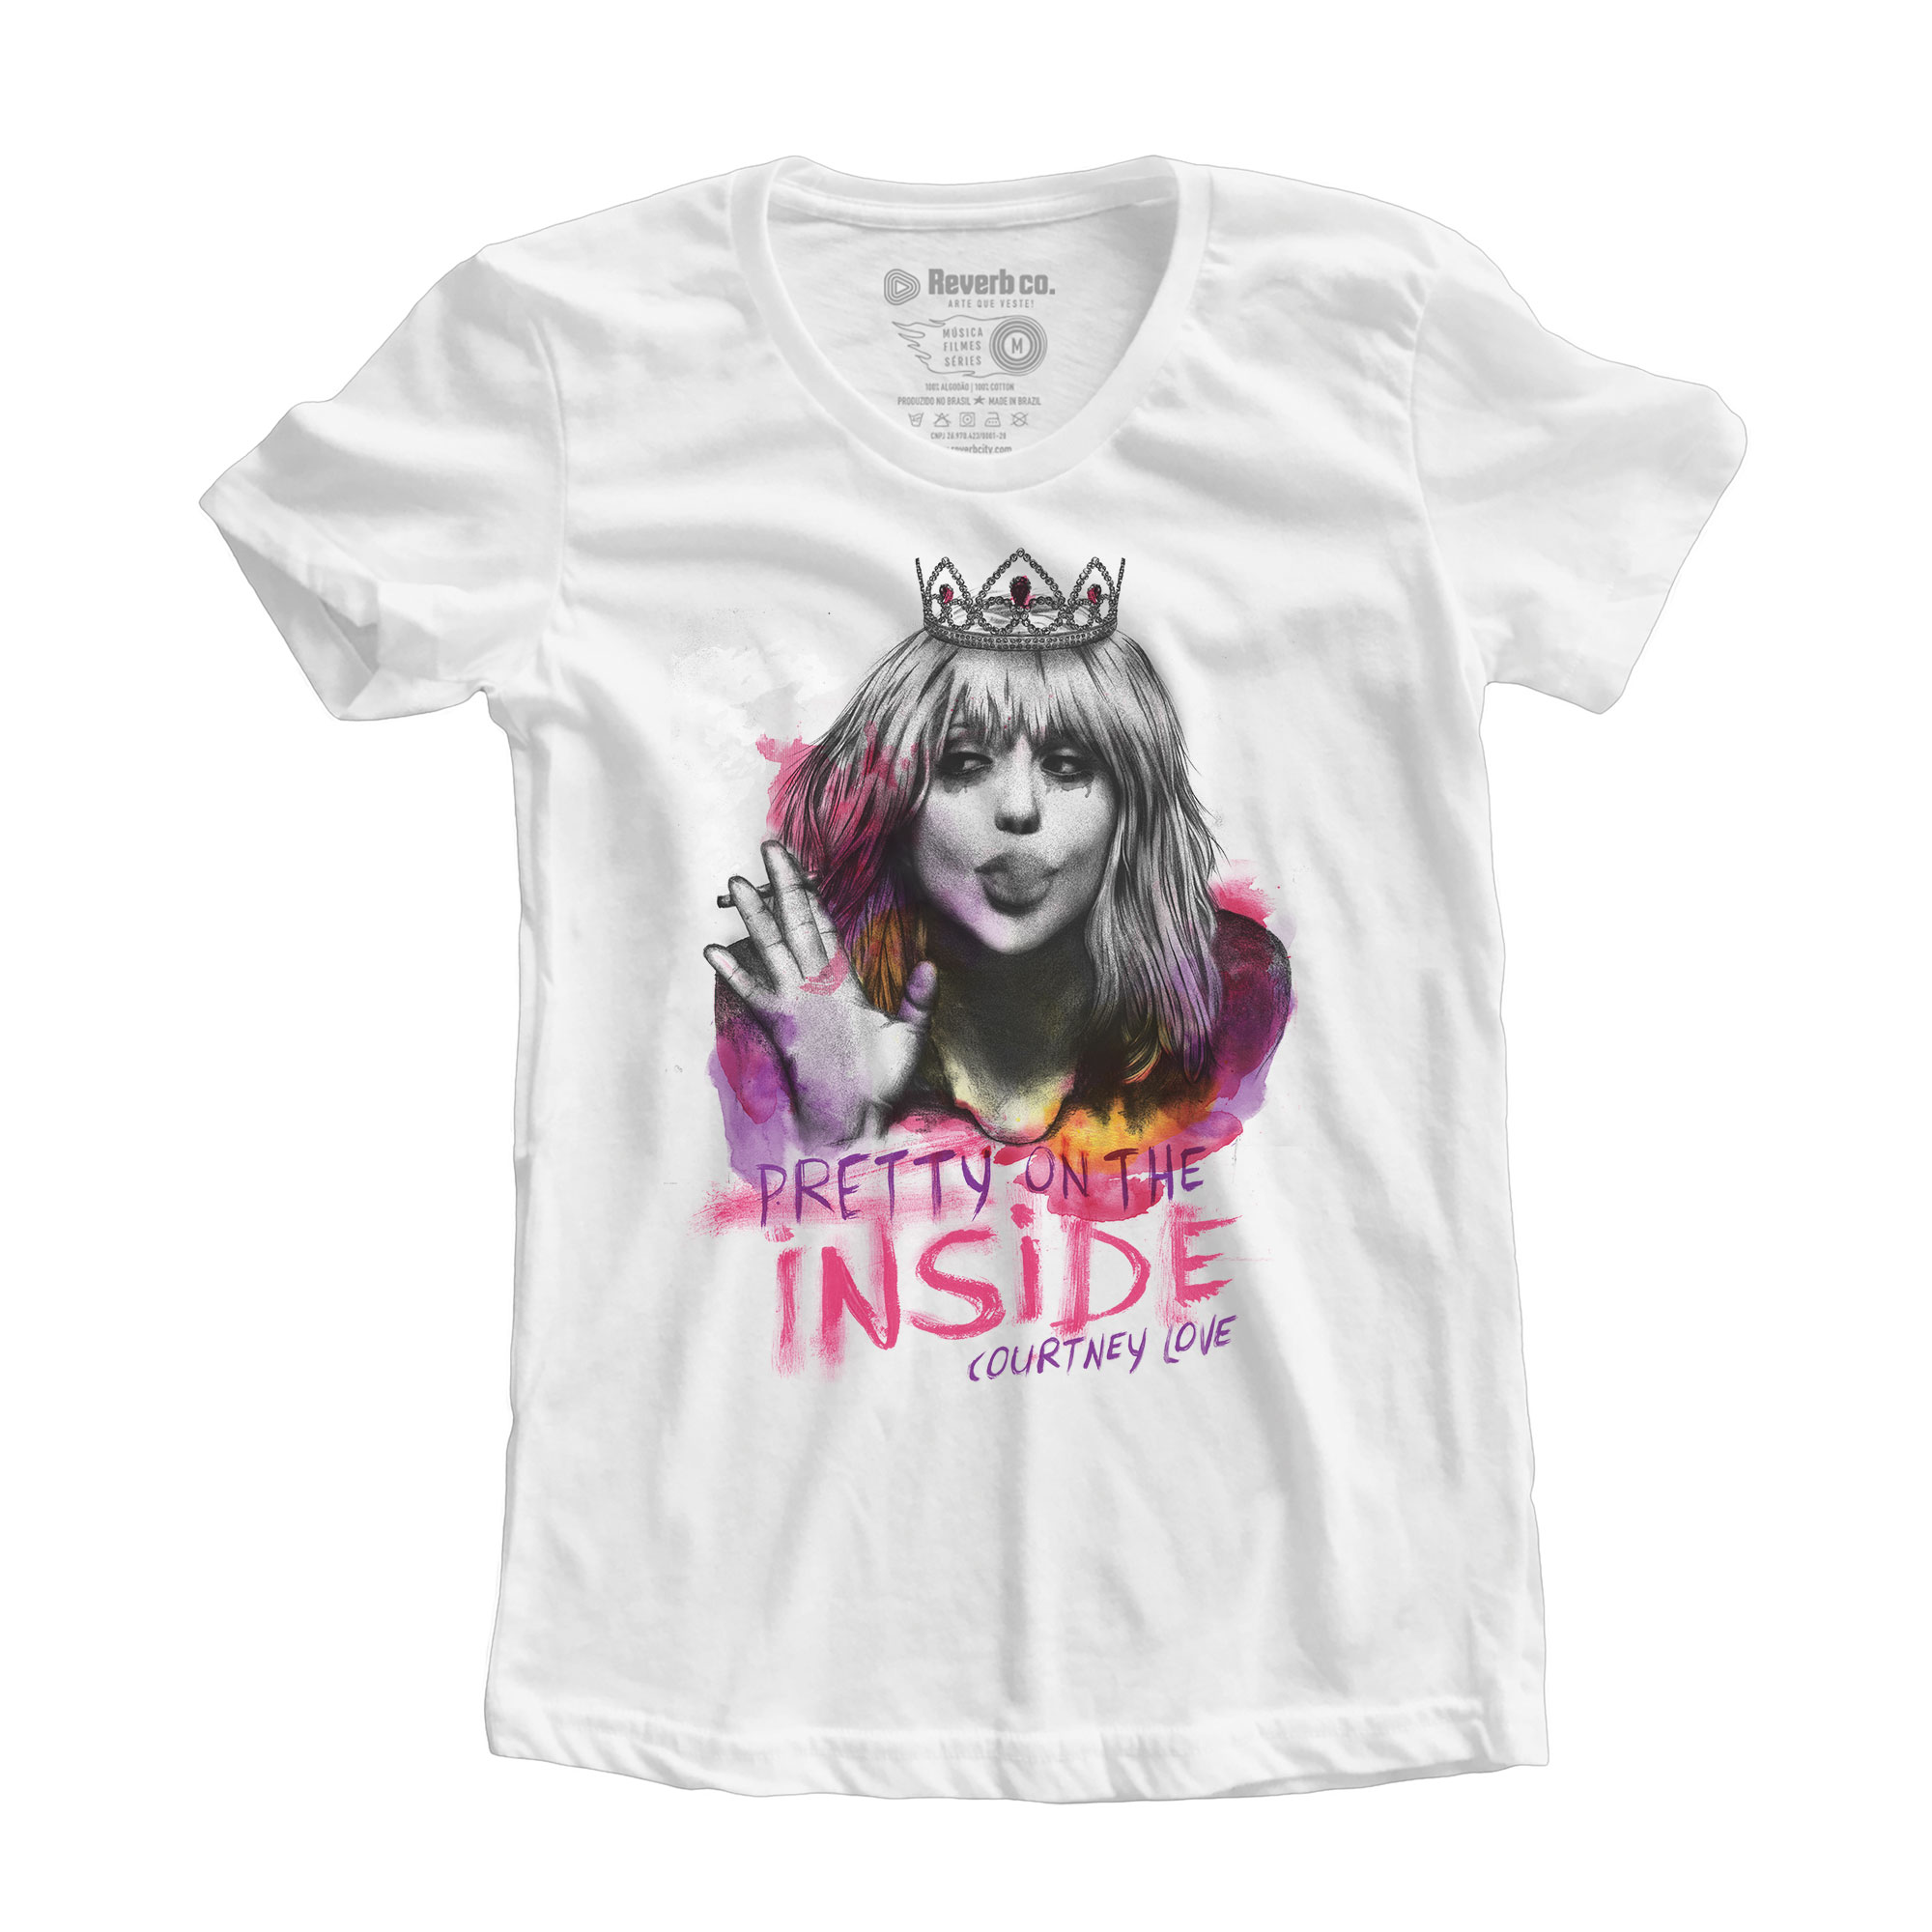 Camiseta Pretty On The Inside - Courtney Love - Feminino